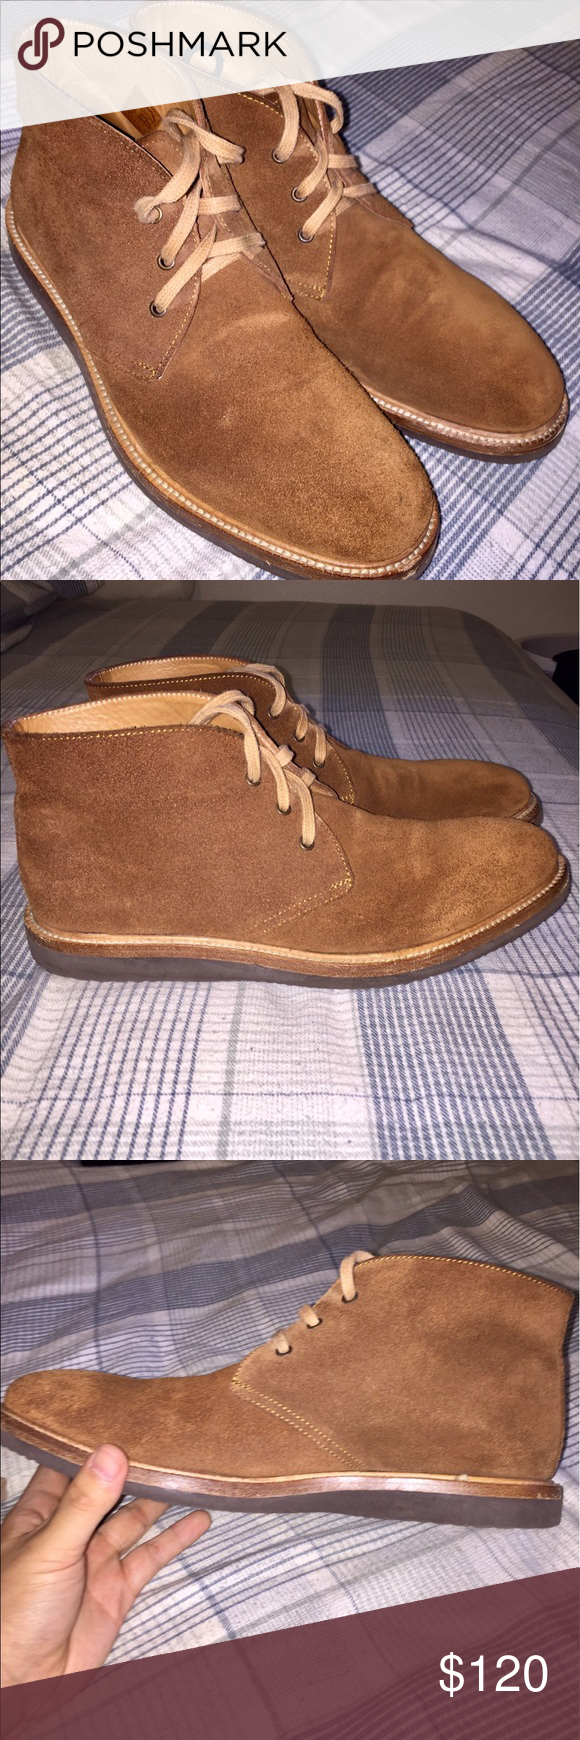 Chukka/Desert Boots 8/10 condition. Ask me any question Crosby Square Shoes Chukka Boots